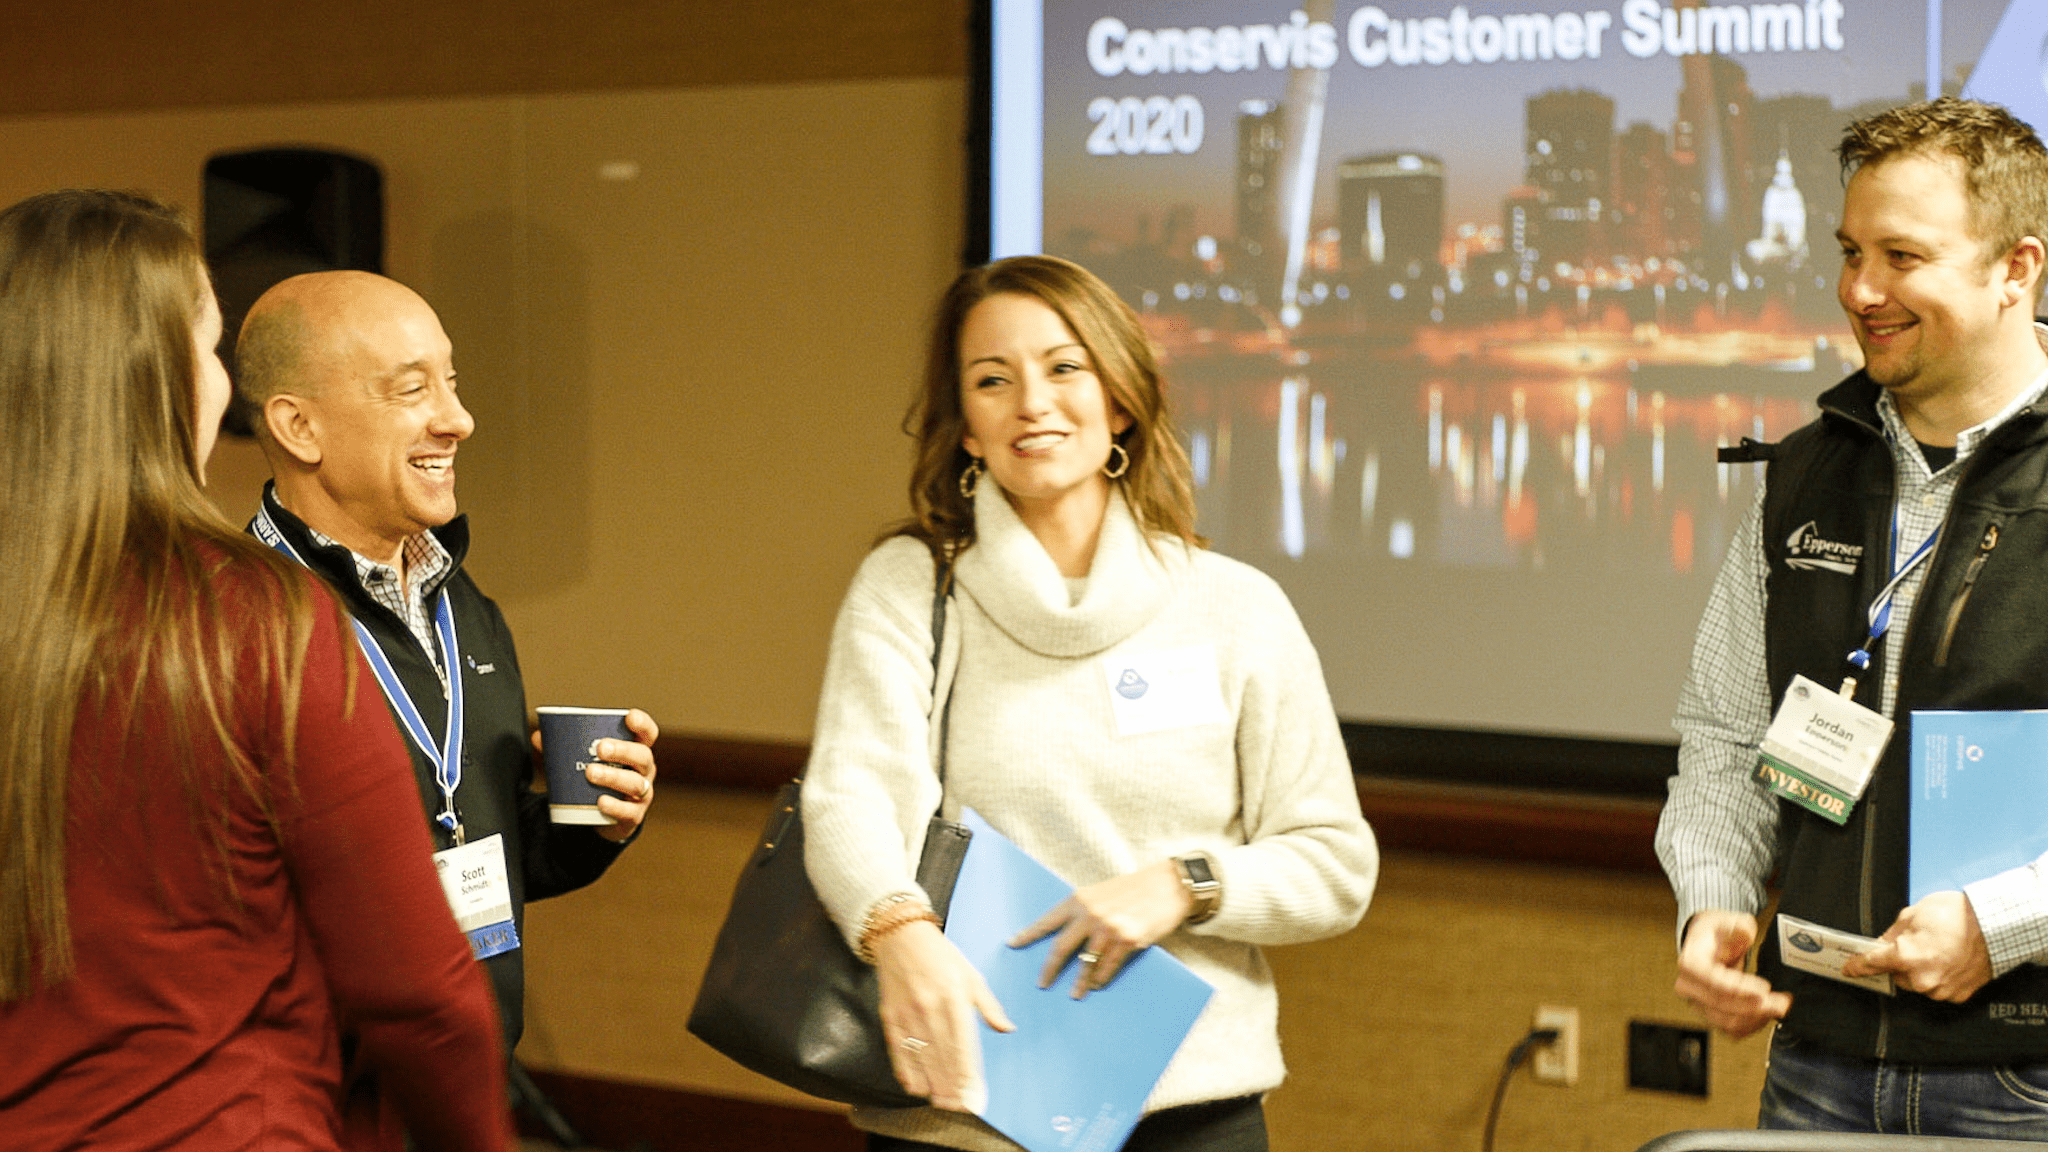 Conservis Customer Summit in St. Louis, MO